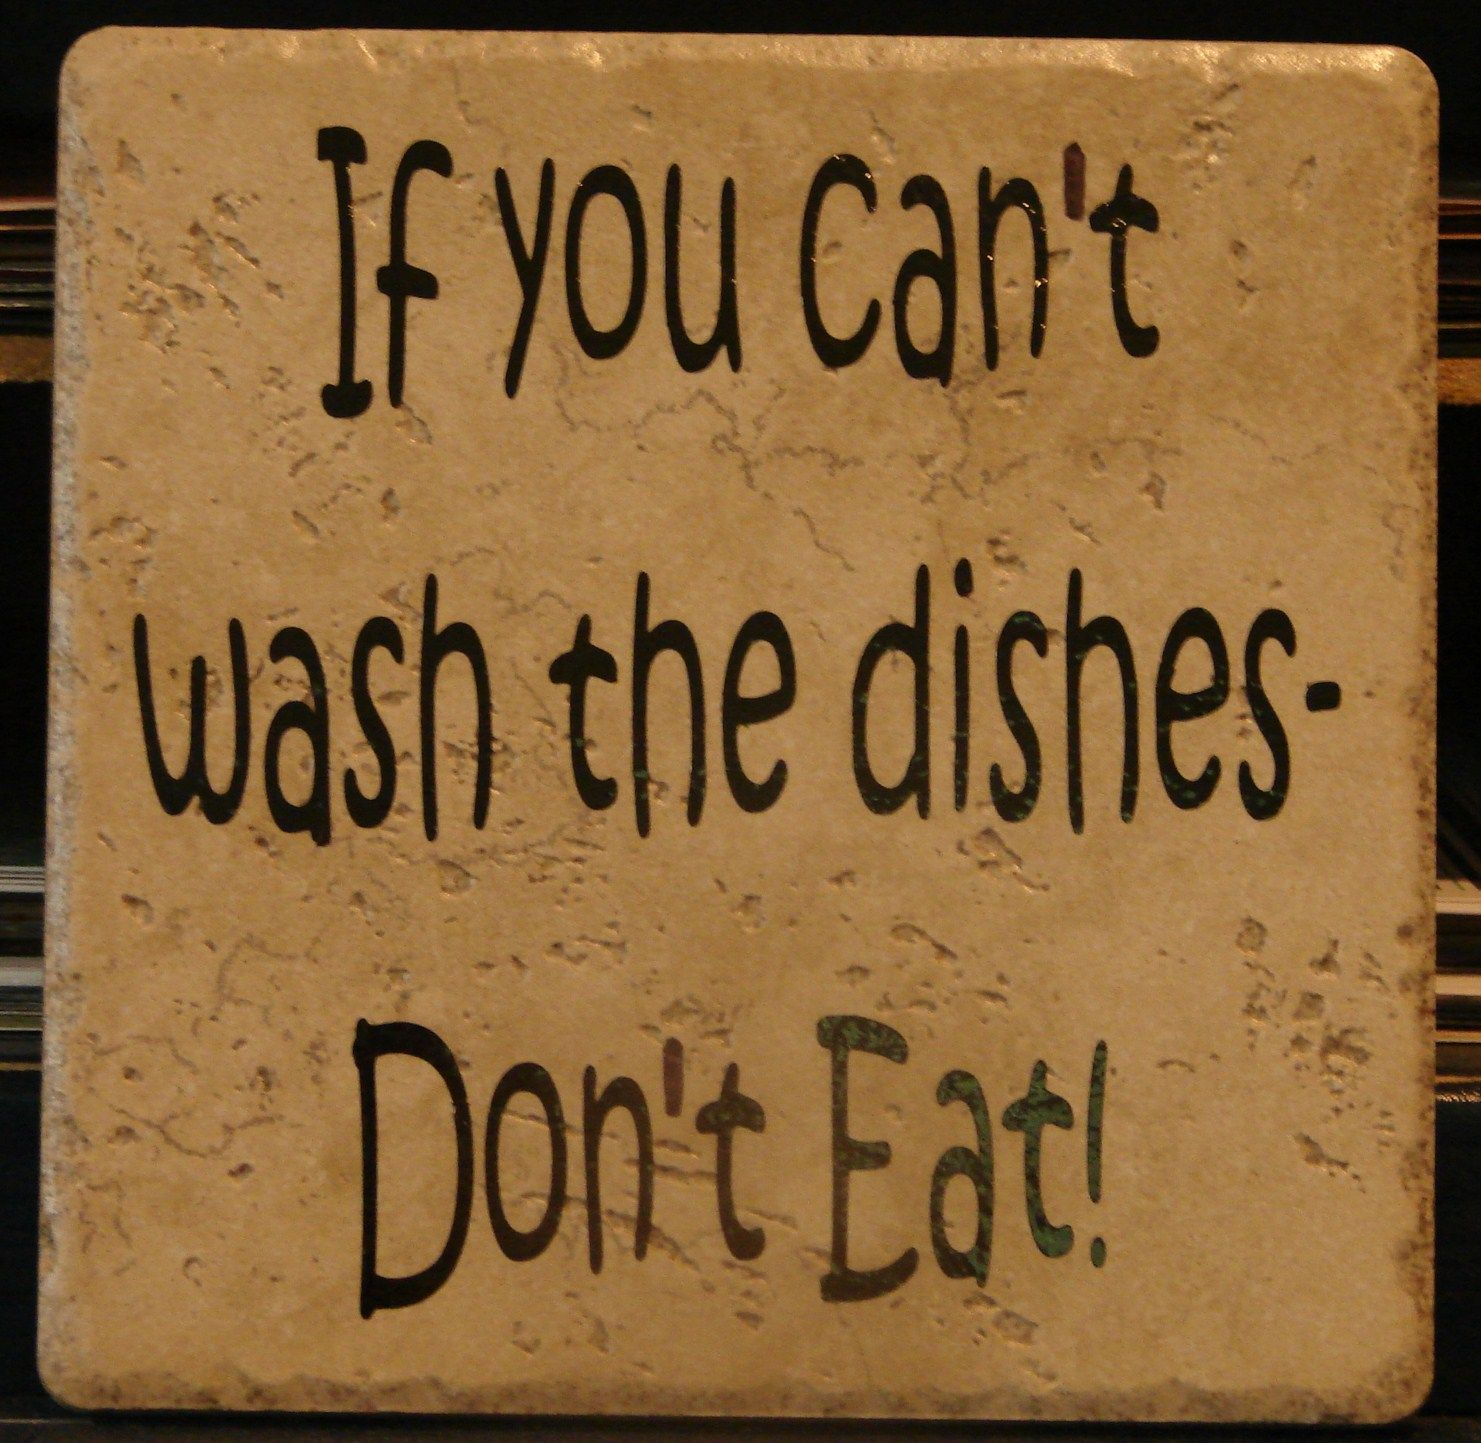 every kitchen needs this one if you can t wash the dishes gpoy